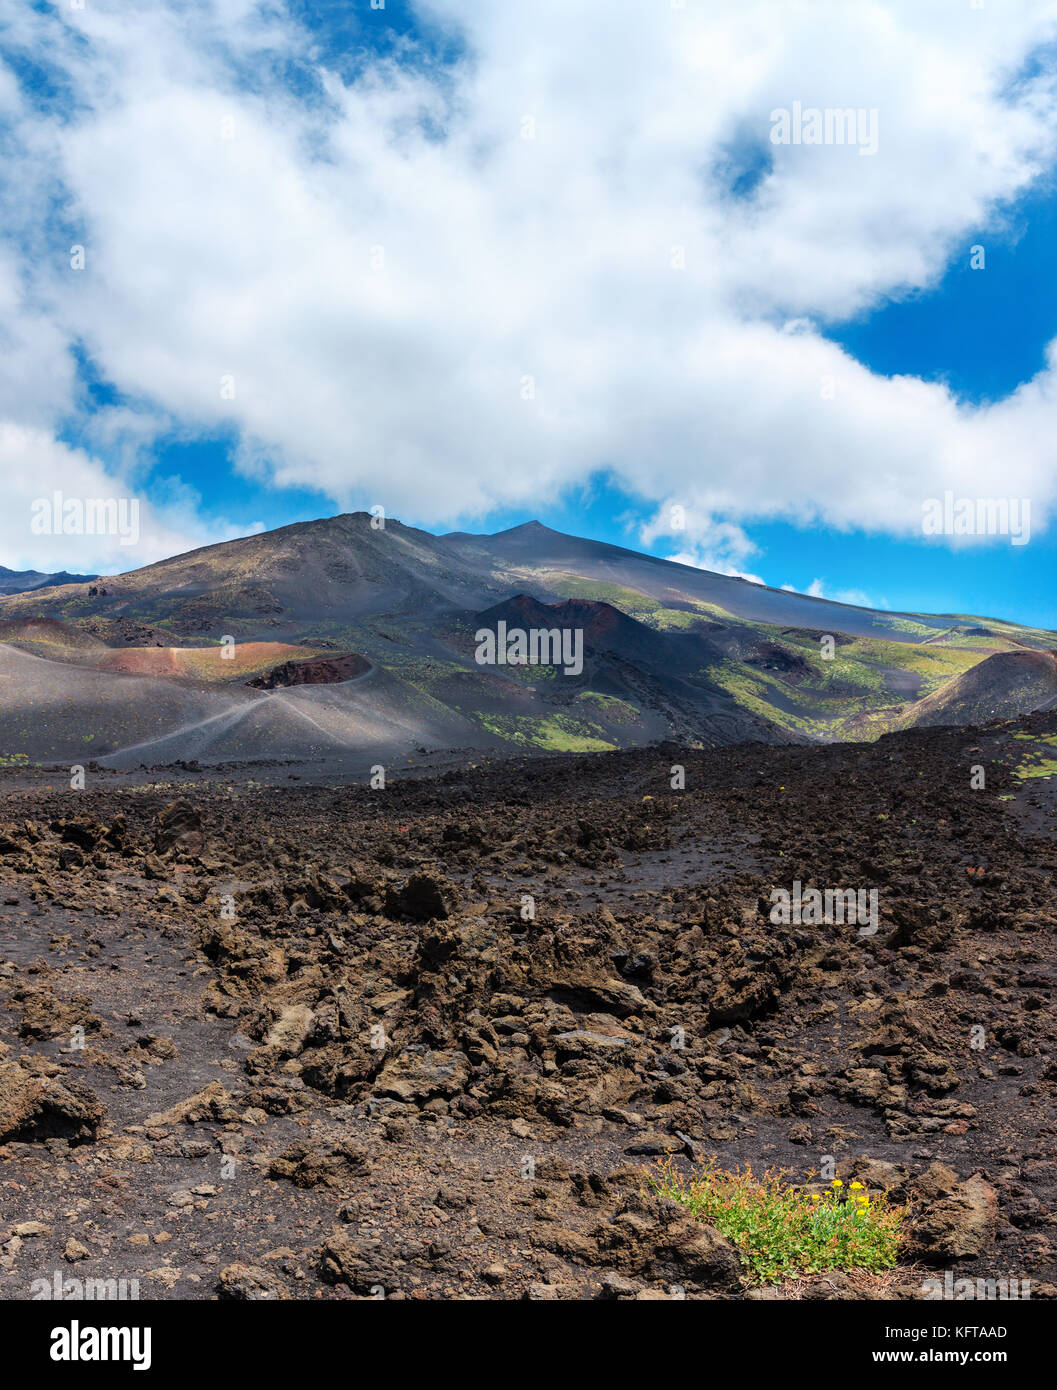 Flowers on stony magma fields between summer Etna volcano mountain craters, Sicily, Italy. - Stock Image